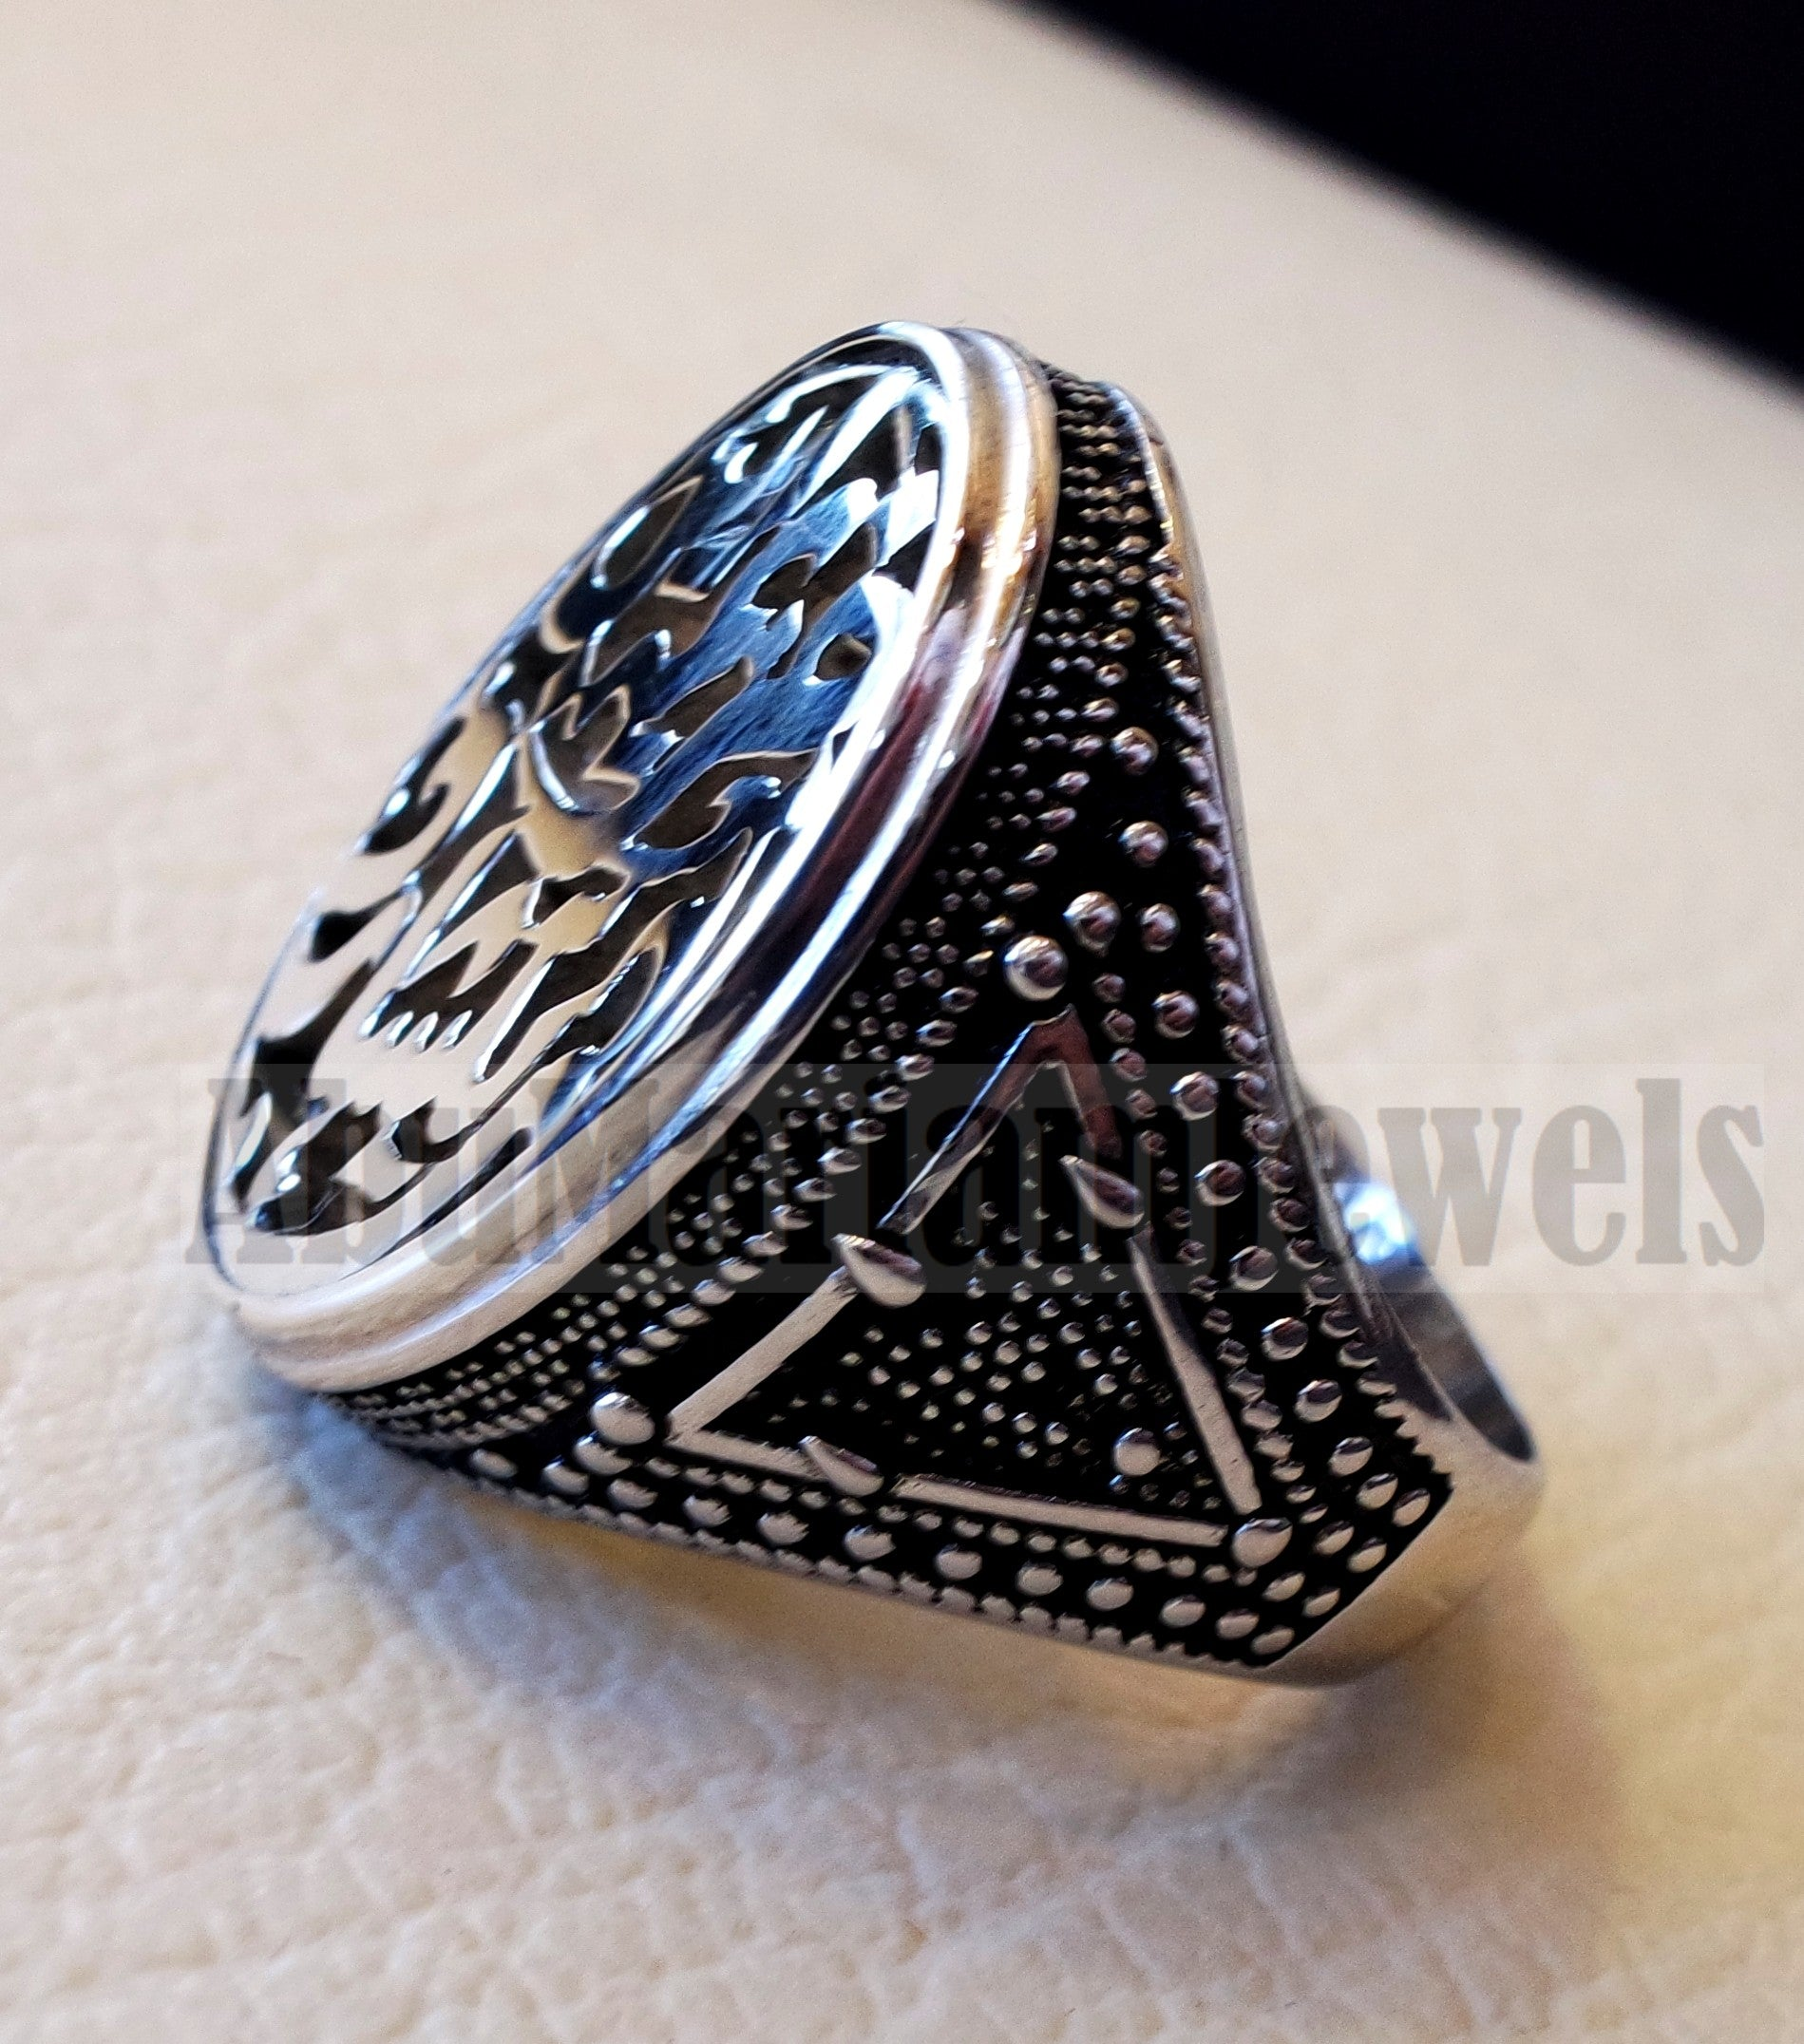 Customized Arabic calligraphy names handmade ring personalized antique jewelry style sterling silver 925 any size TSN1008 خاتم اسم تفصيل